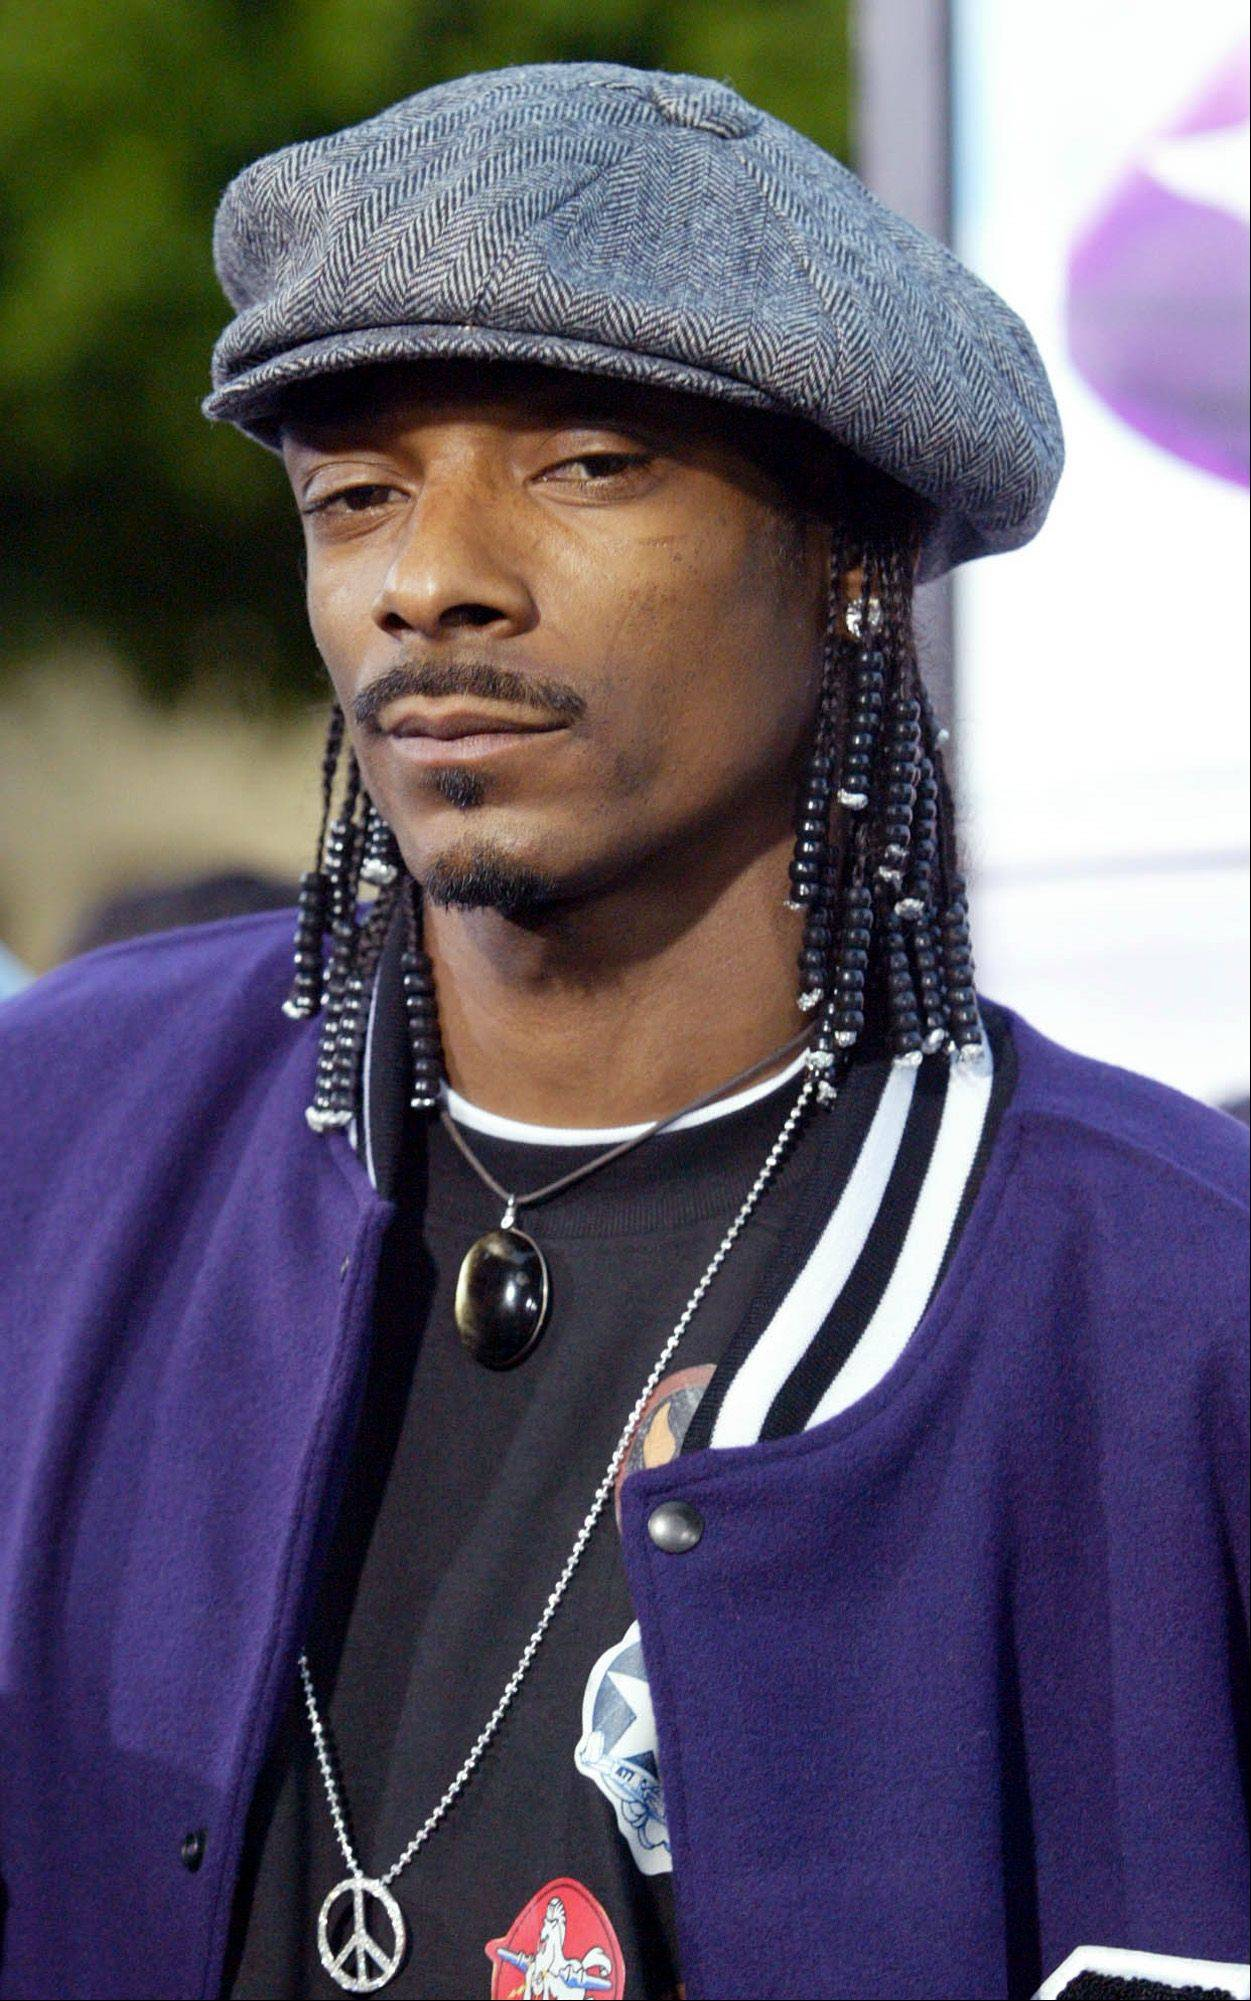 Actor and singer Snoop Dog, shown in this May 17, 2004, file photo in Los Angeles, has announced that he will change his name to Snoop Lion and will transform himself into a reggae artist.